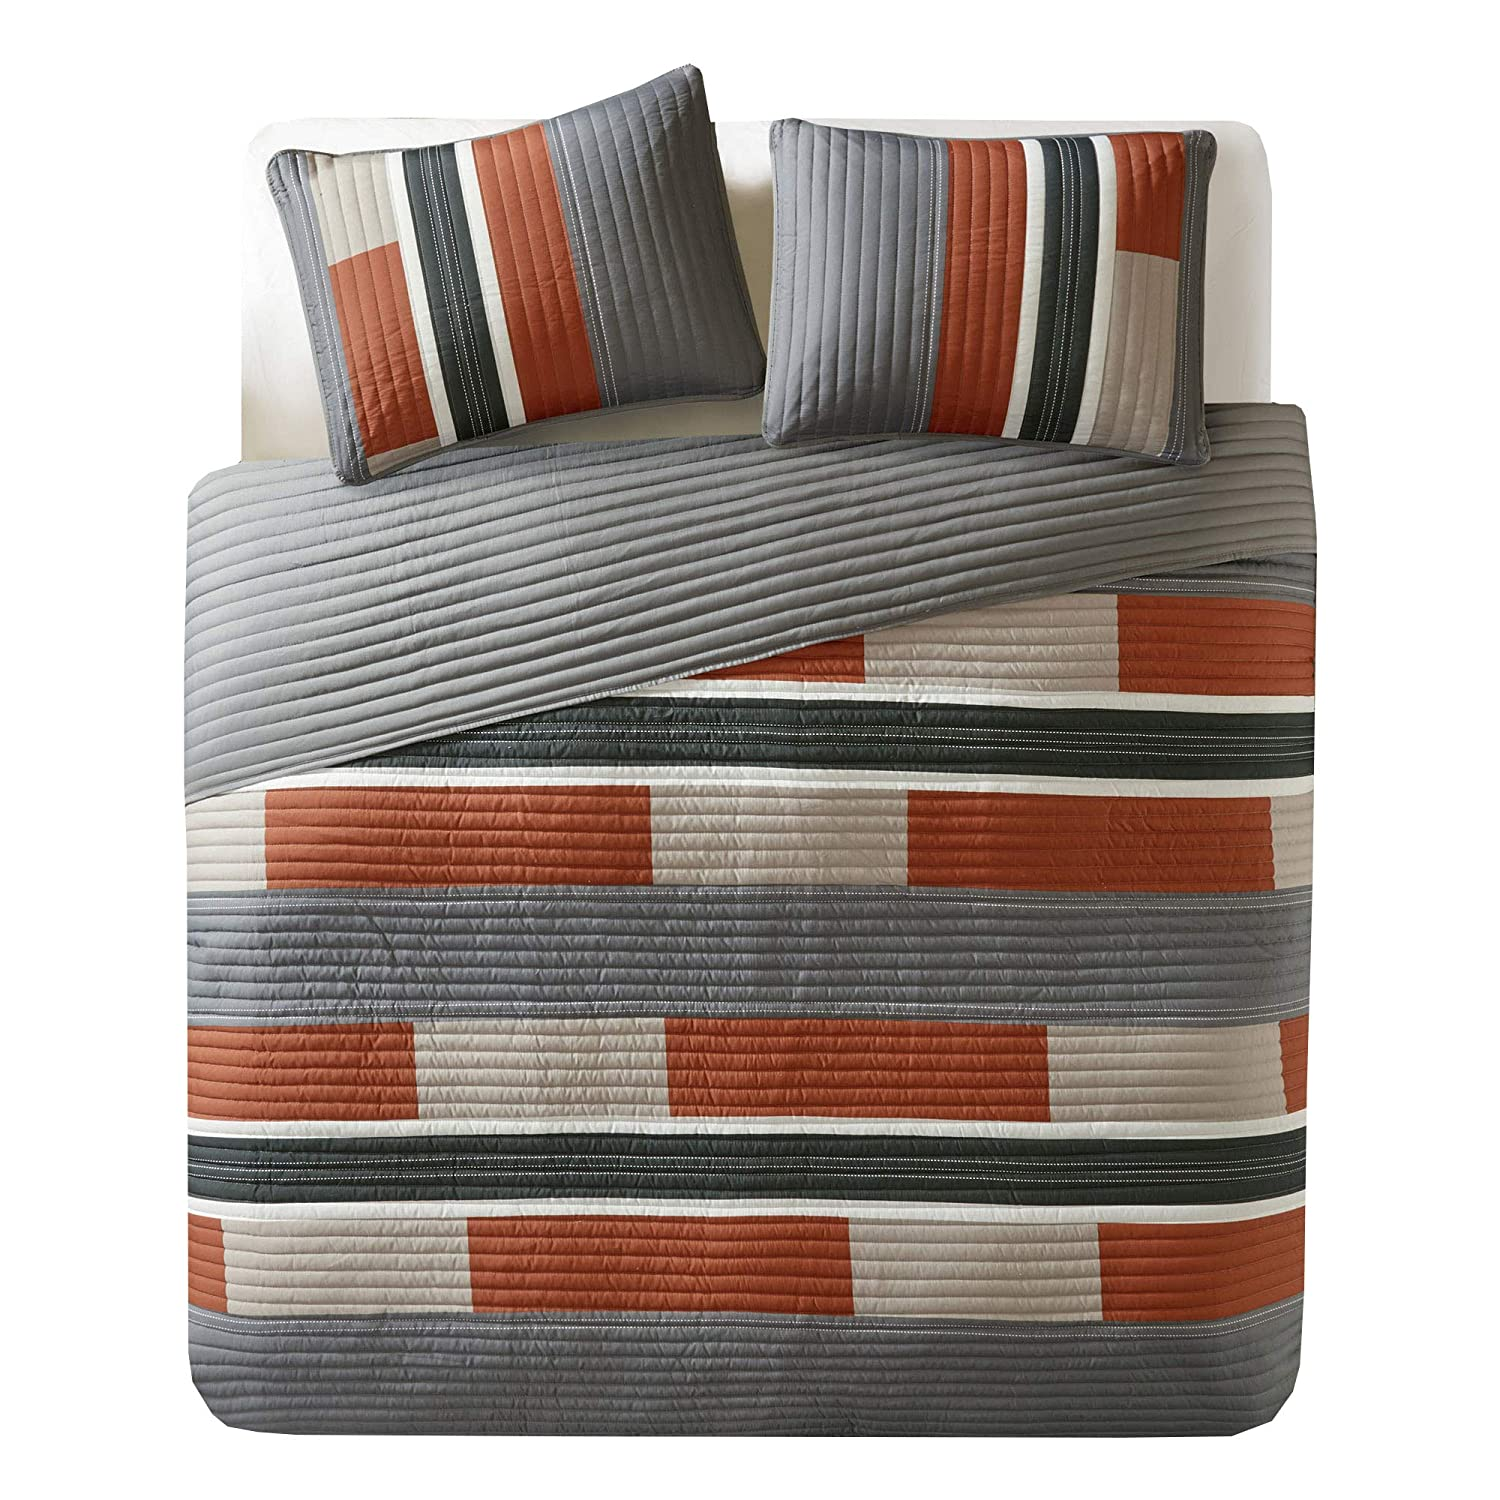 Comfort Spaces Pierre 3 Piece Quilt Coverlet Bedspread All Season Lightweight Hypoallergenic Pipeline Stripe Colorblock Kids Bedding Set, Full/Queen, Gray/Orange